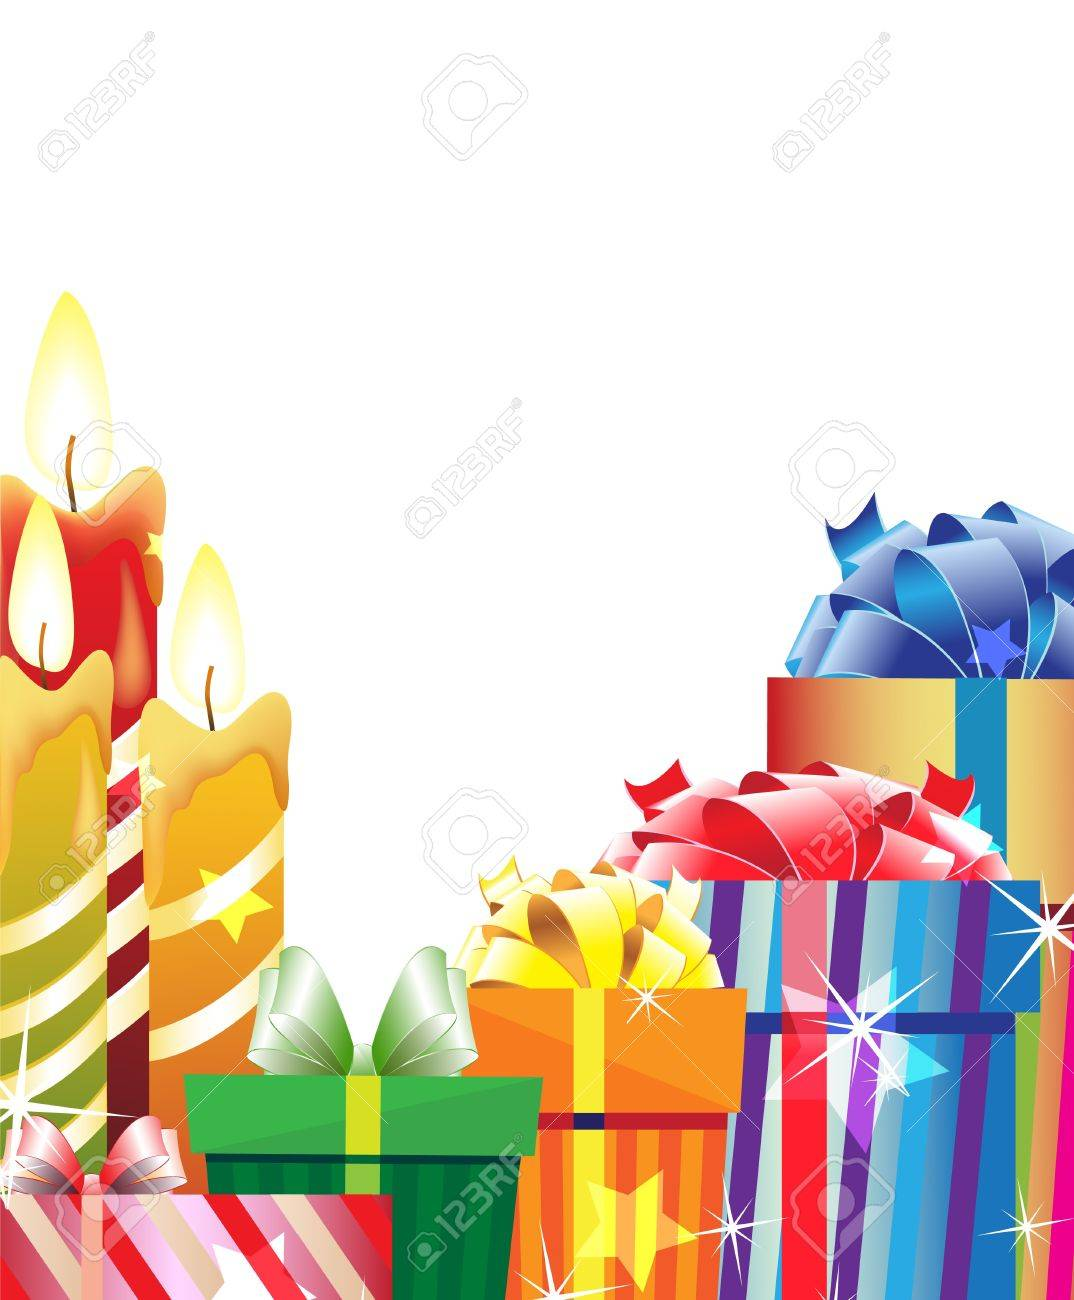 Gift boxes and burning candles on a white background Stock Vector - 16118966